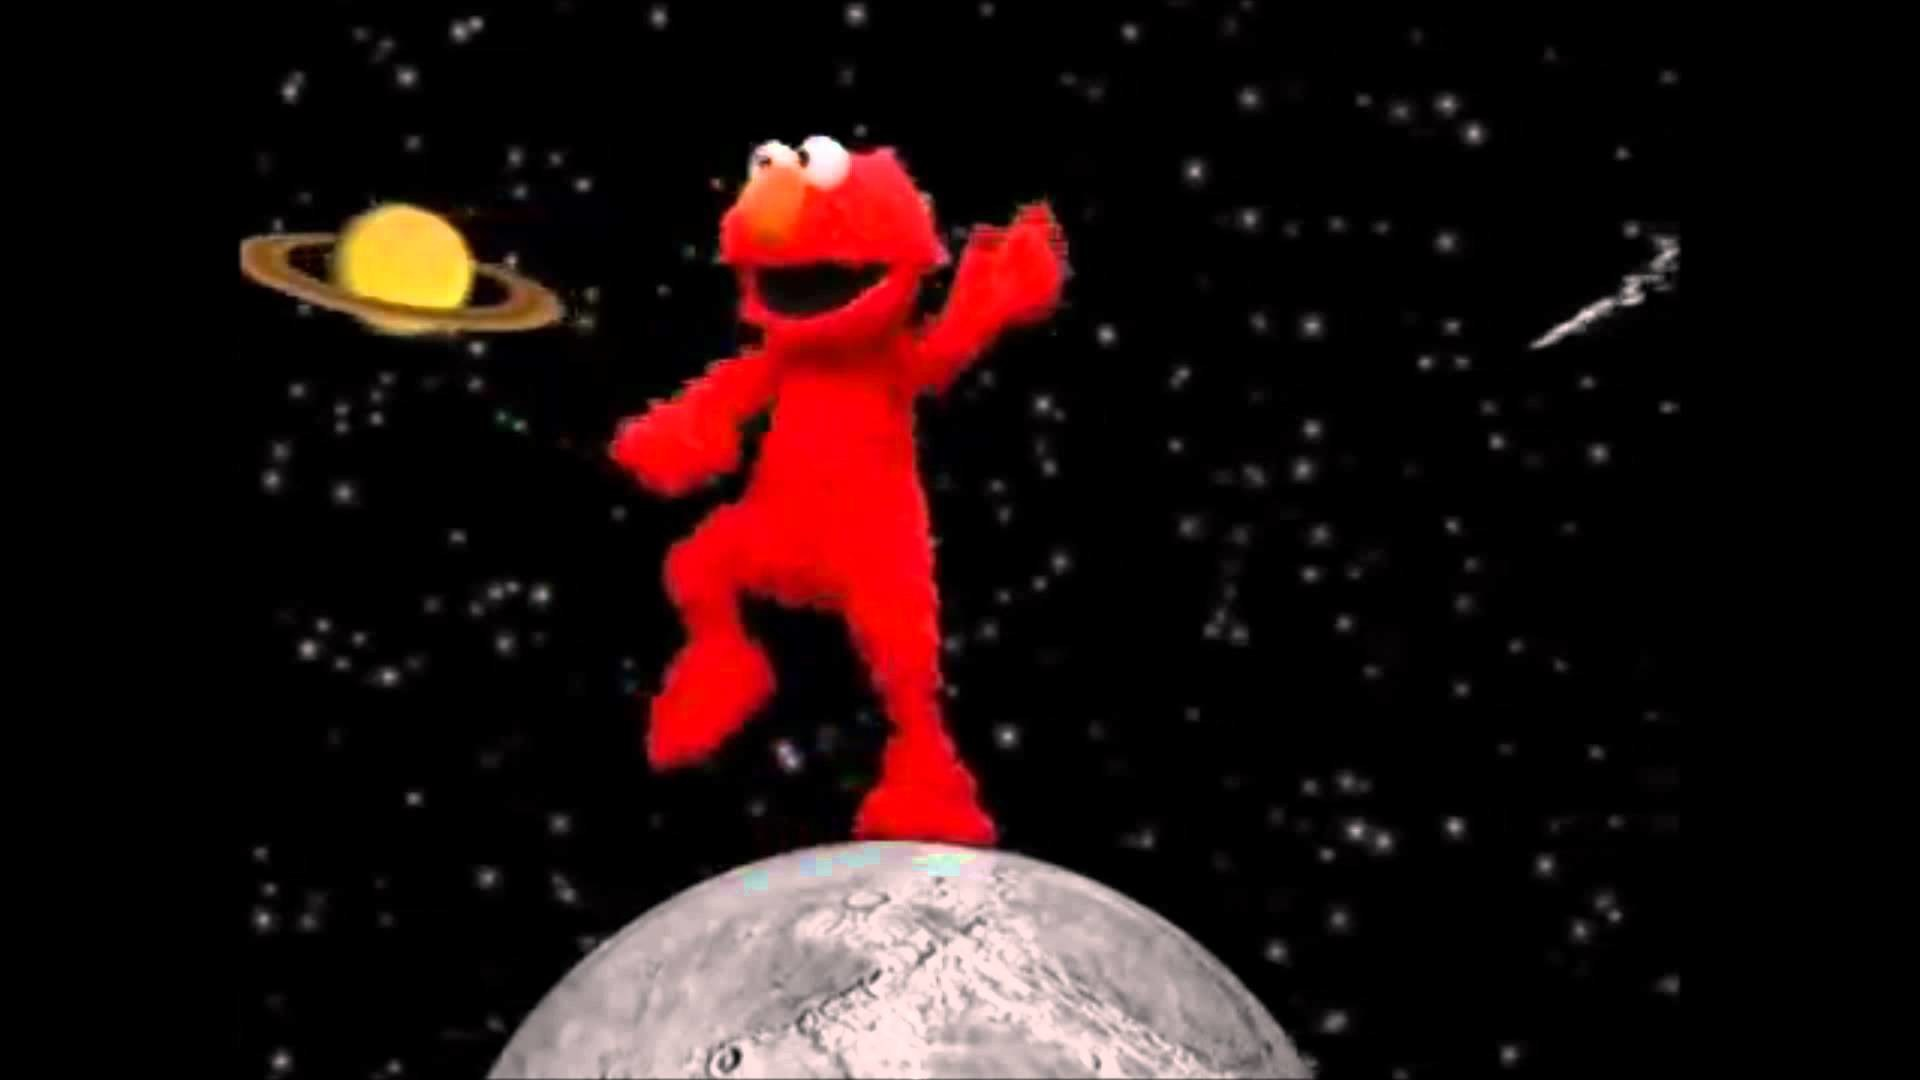 Elmo Wallpaper Elmo Sicko Mode 2021038 Hd Wallpaper